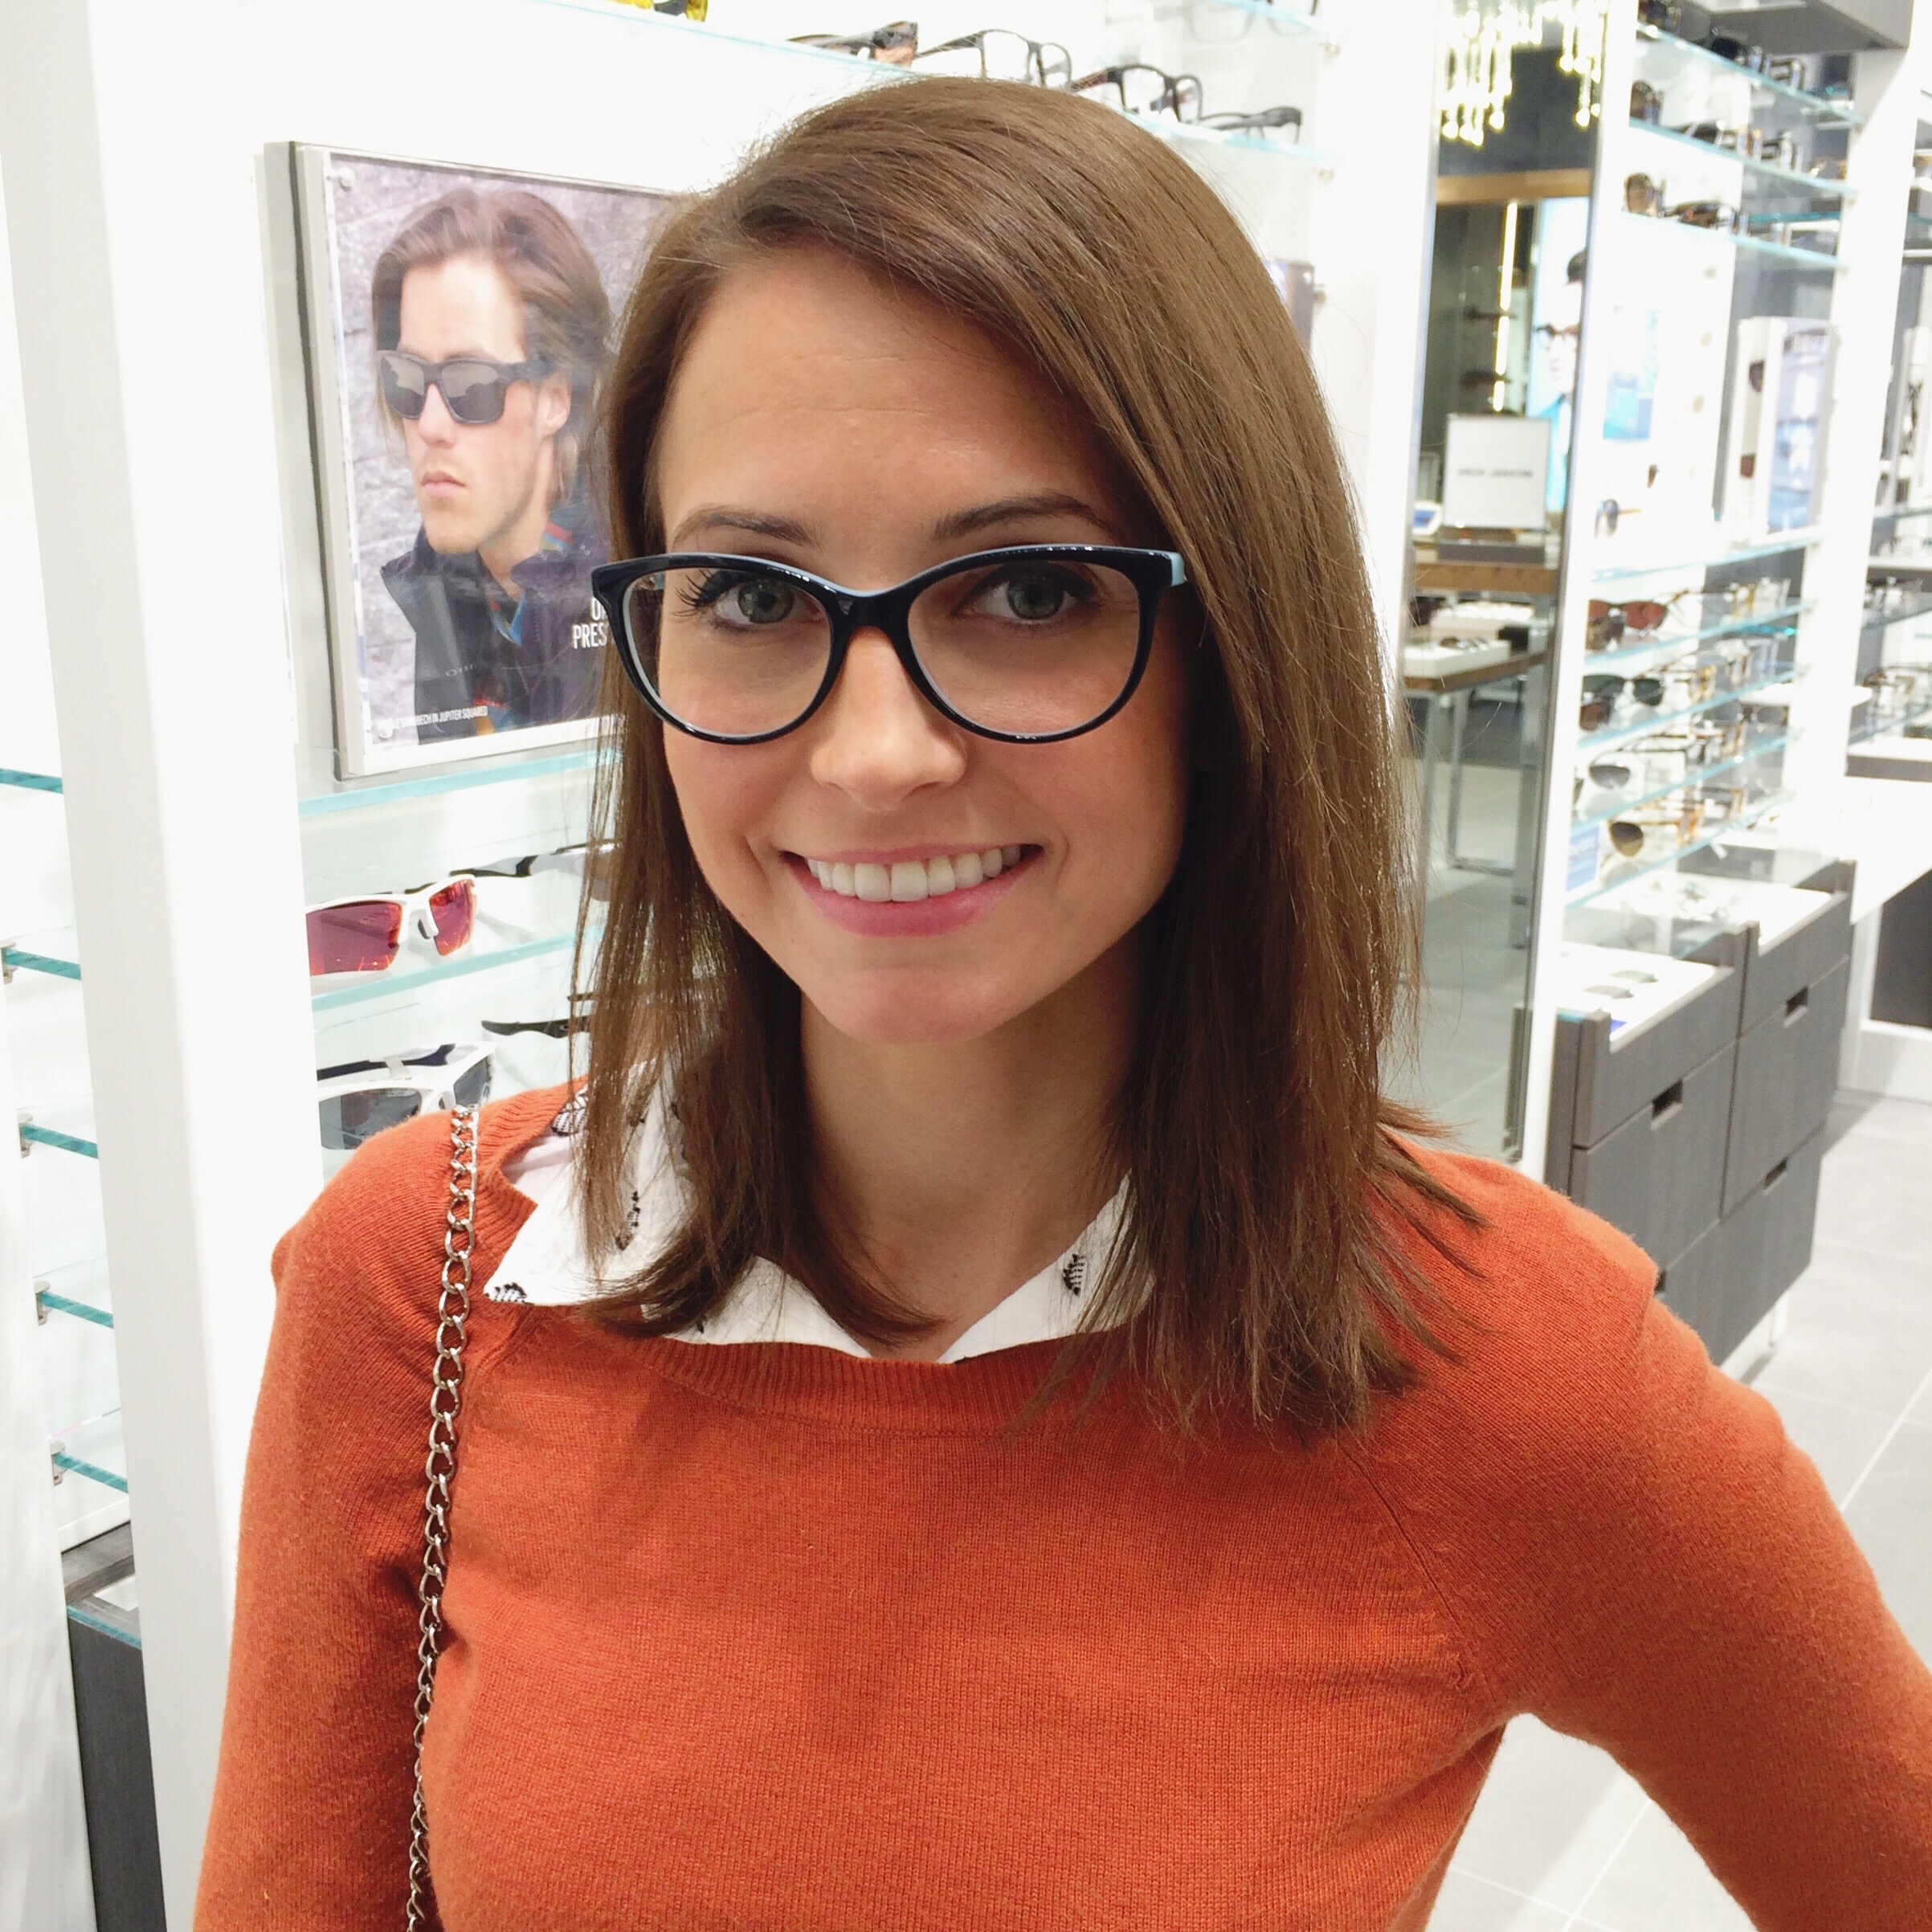 heather in tiffany & co glasses